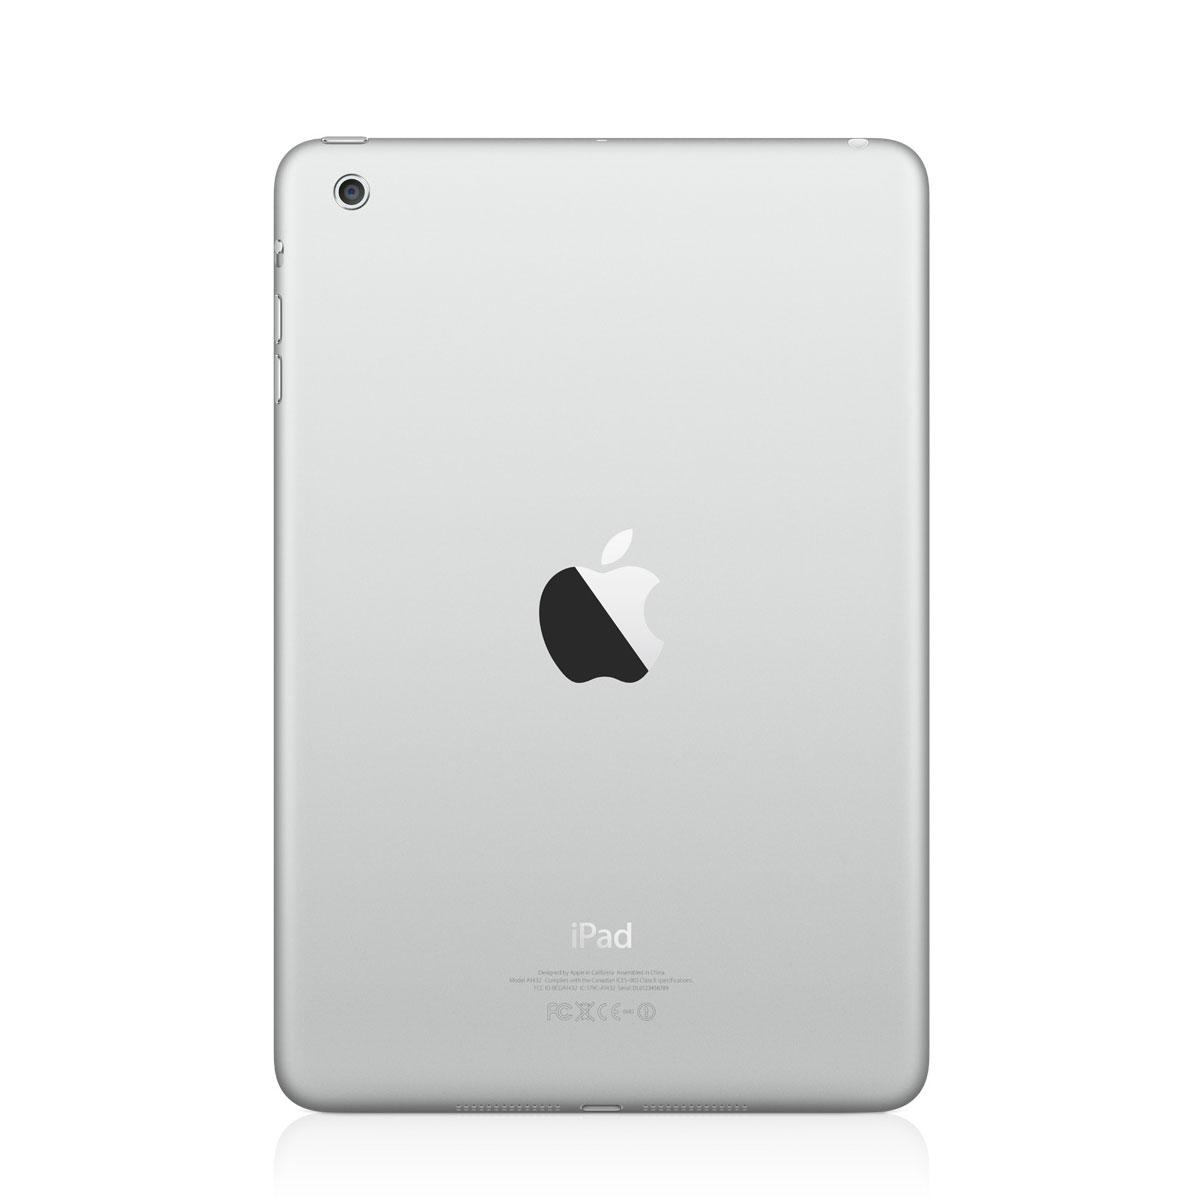 ipad mini 2 64 gb silber wlan gebraucht back market. Black Bedroom Furniture Sets. Home Design Ideas